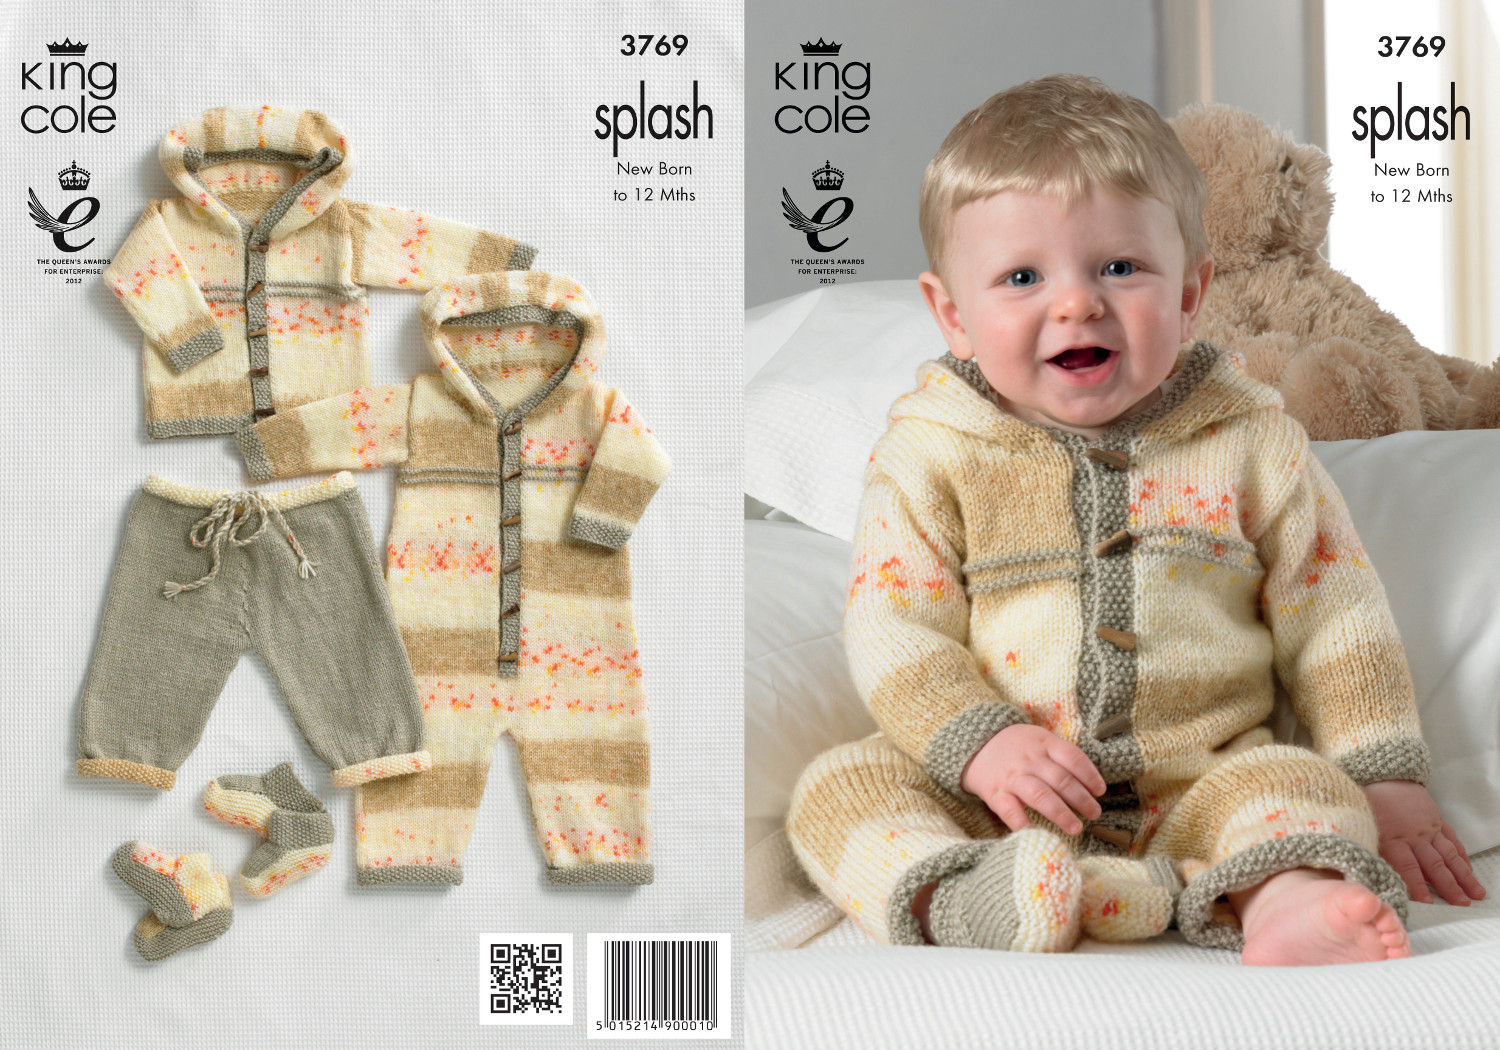 Double Knitting Baby Patterns Details About Ba Double Knitting Pattern Splash Dk King Cole Coat Trousers All In One 3769